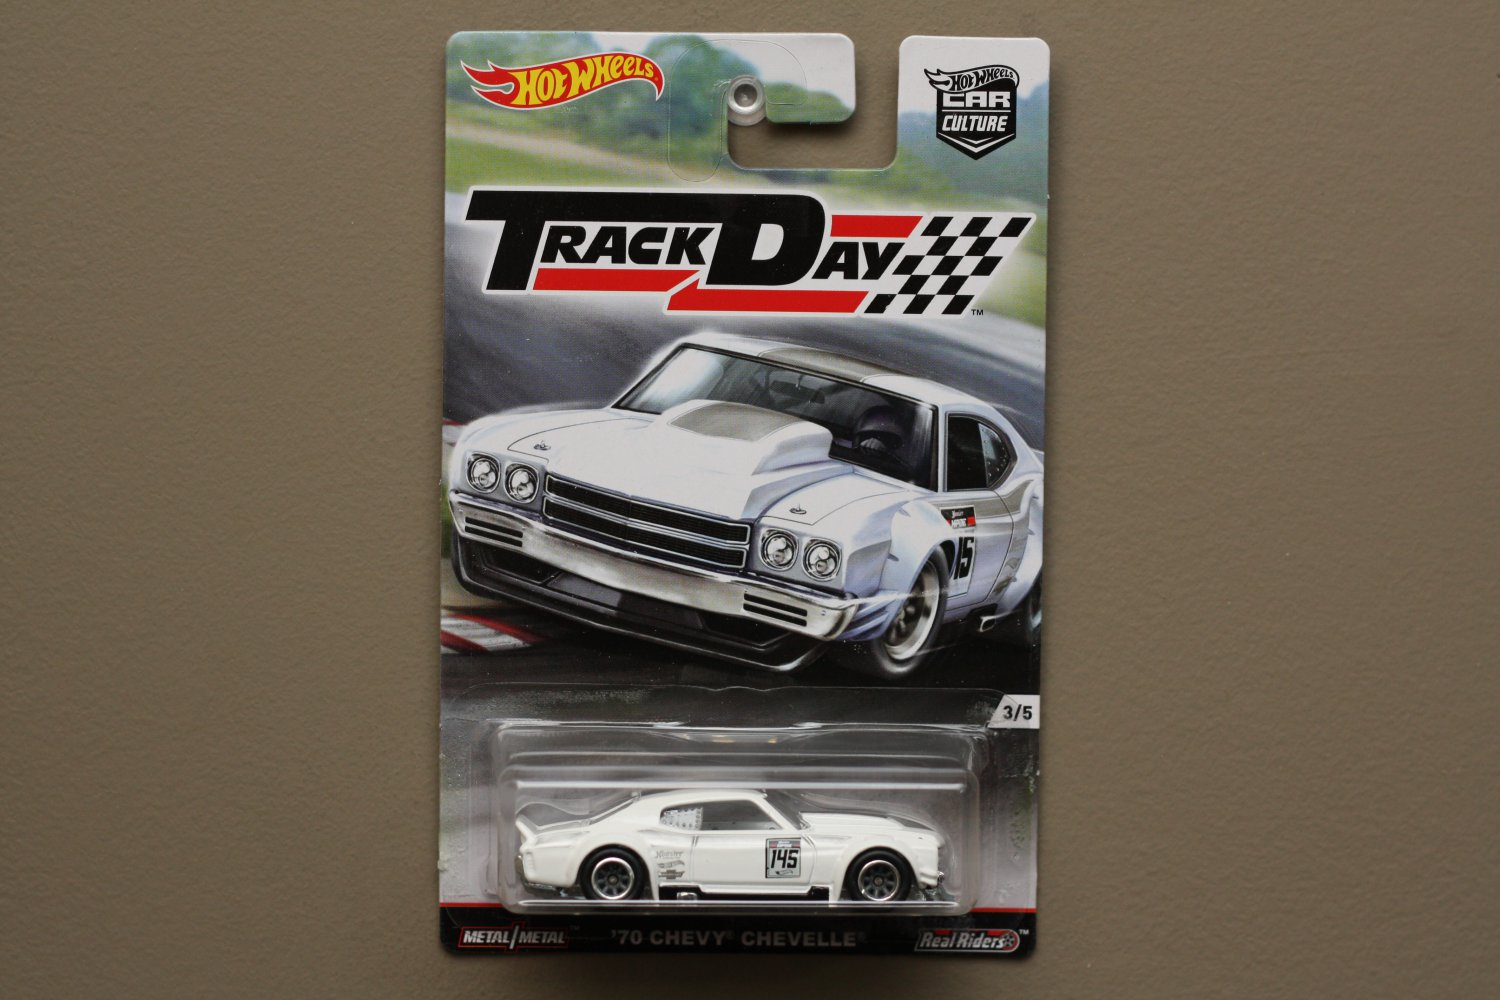 Hot Wheels 2016 Car Culture Track Day '70 Chevy Chevelle (SEE CONDITION)